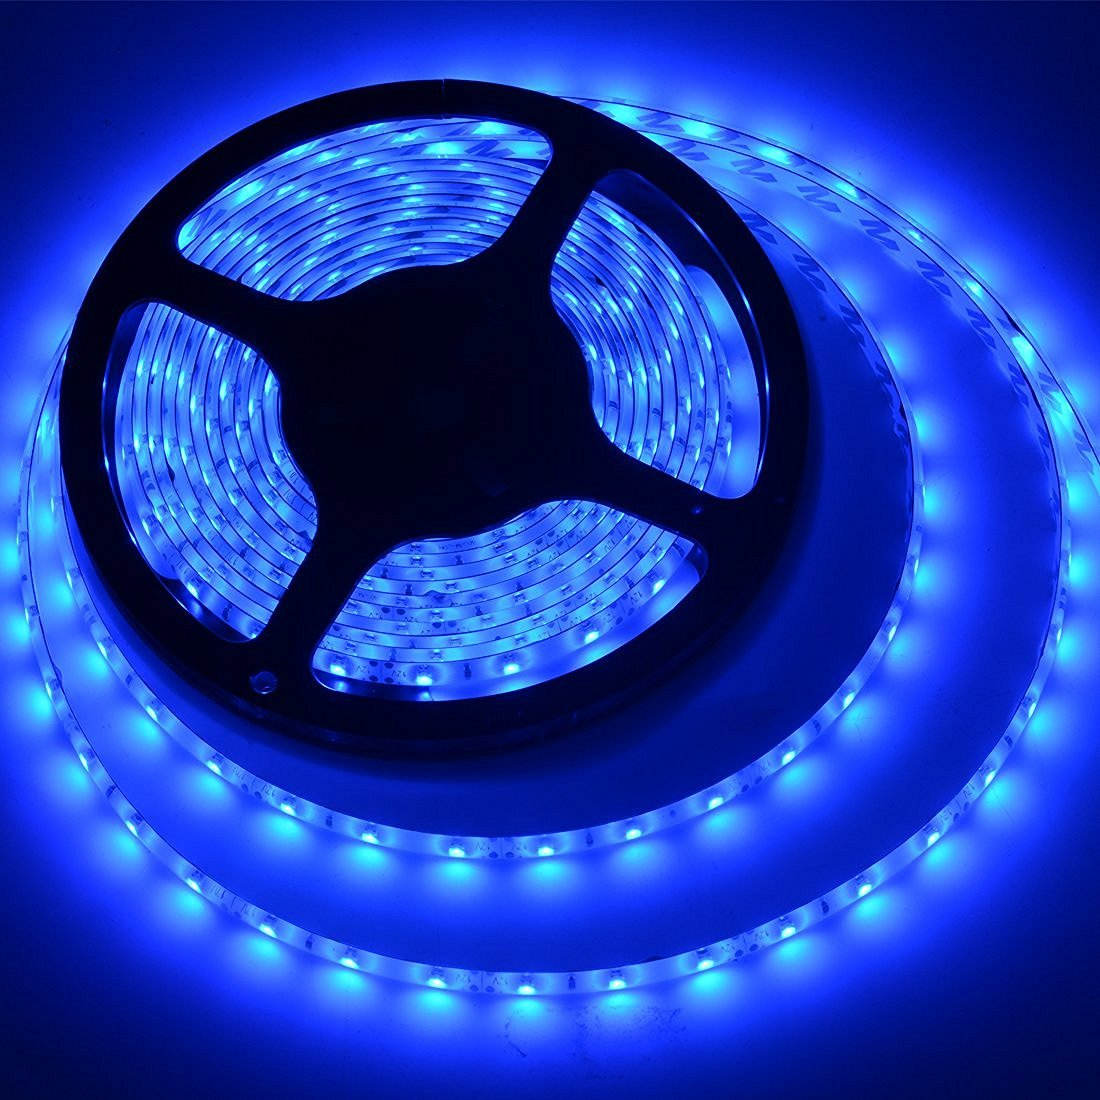 Amazon meili led light strip smd 3528 164 ft 5 meter amazon meili led light strip smd 3528 164 ft 5 meter waterproof 300 leds 12v flexible rope light no power supply blue home improvement mozeypictures Choice Image